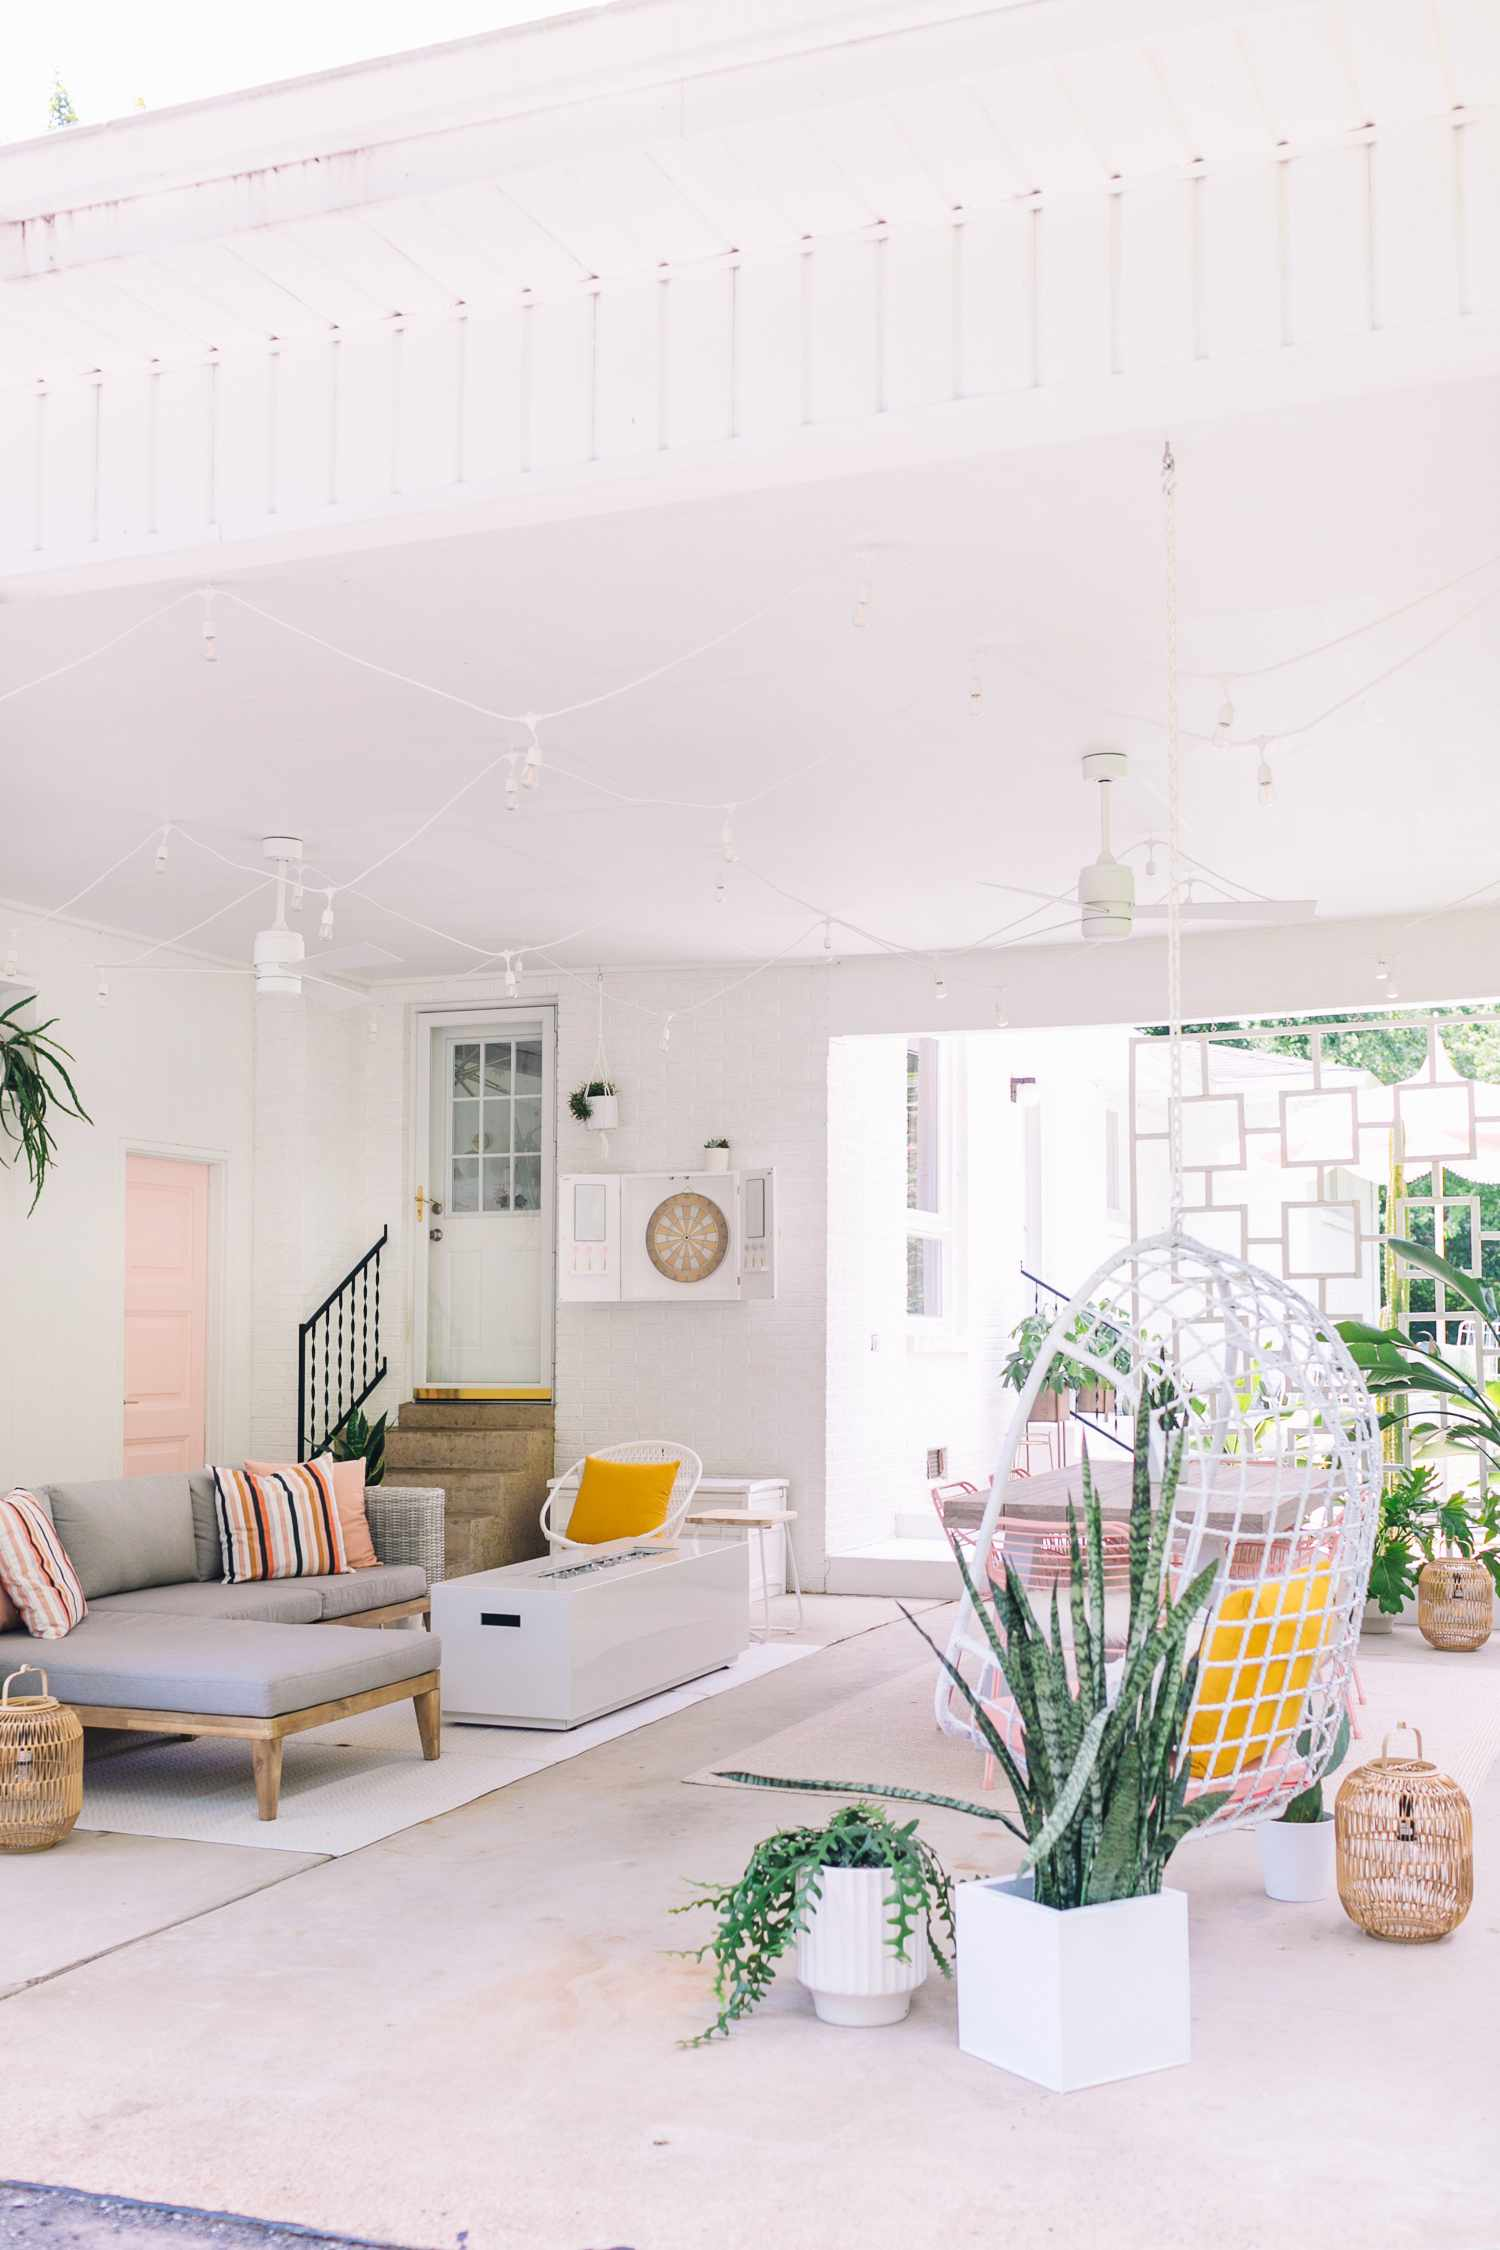 makeover of the week - palm springs inspired carport after shot